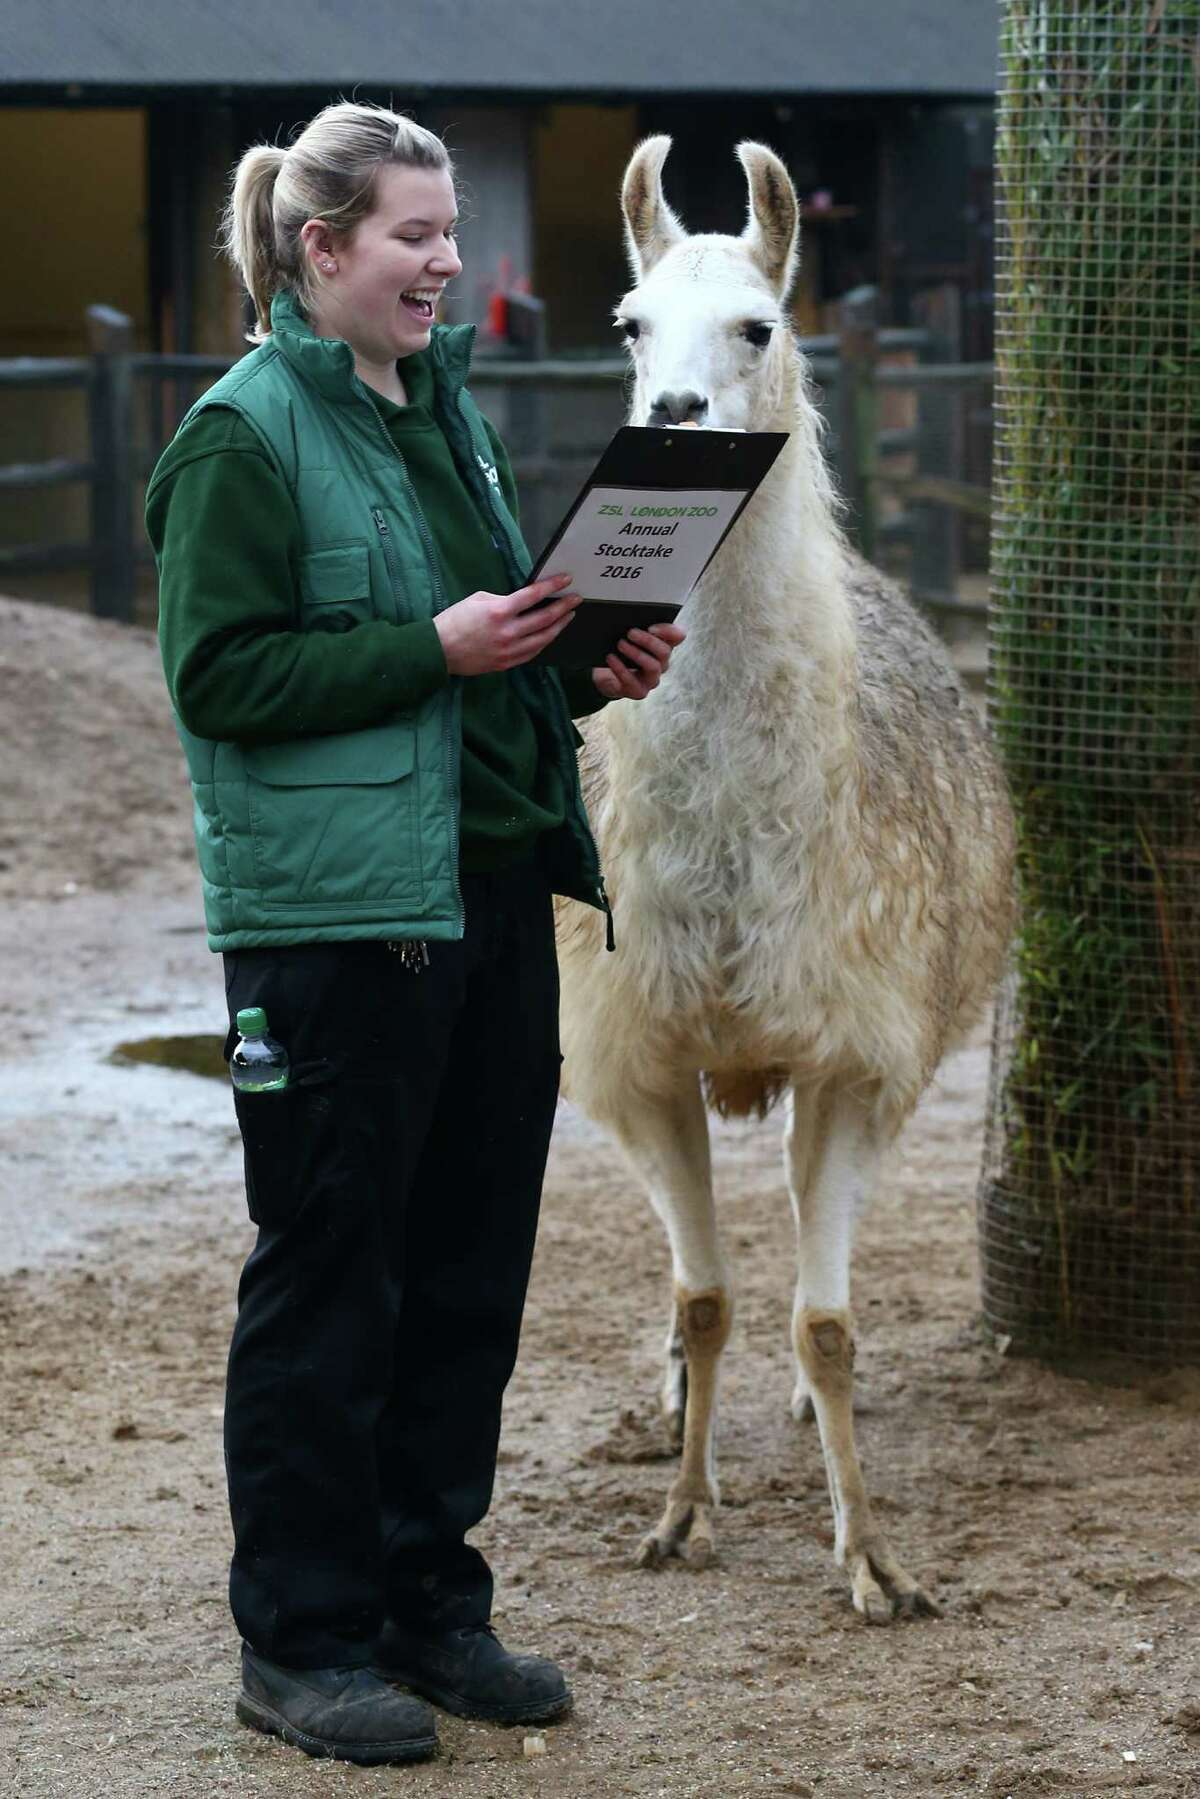 Jessica Jones handles a clipboard as she poses for a photograph with a llama during the annual stocktake of animals at ZSL London Zoo on January 4, 2016 in London, England. The zoo's annual stocktake requires keepers to check on the numbers of every one of the 800 different animal species, including every invertebrate, bird, fish, mammal, reptile, and amphibian.